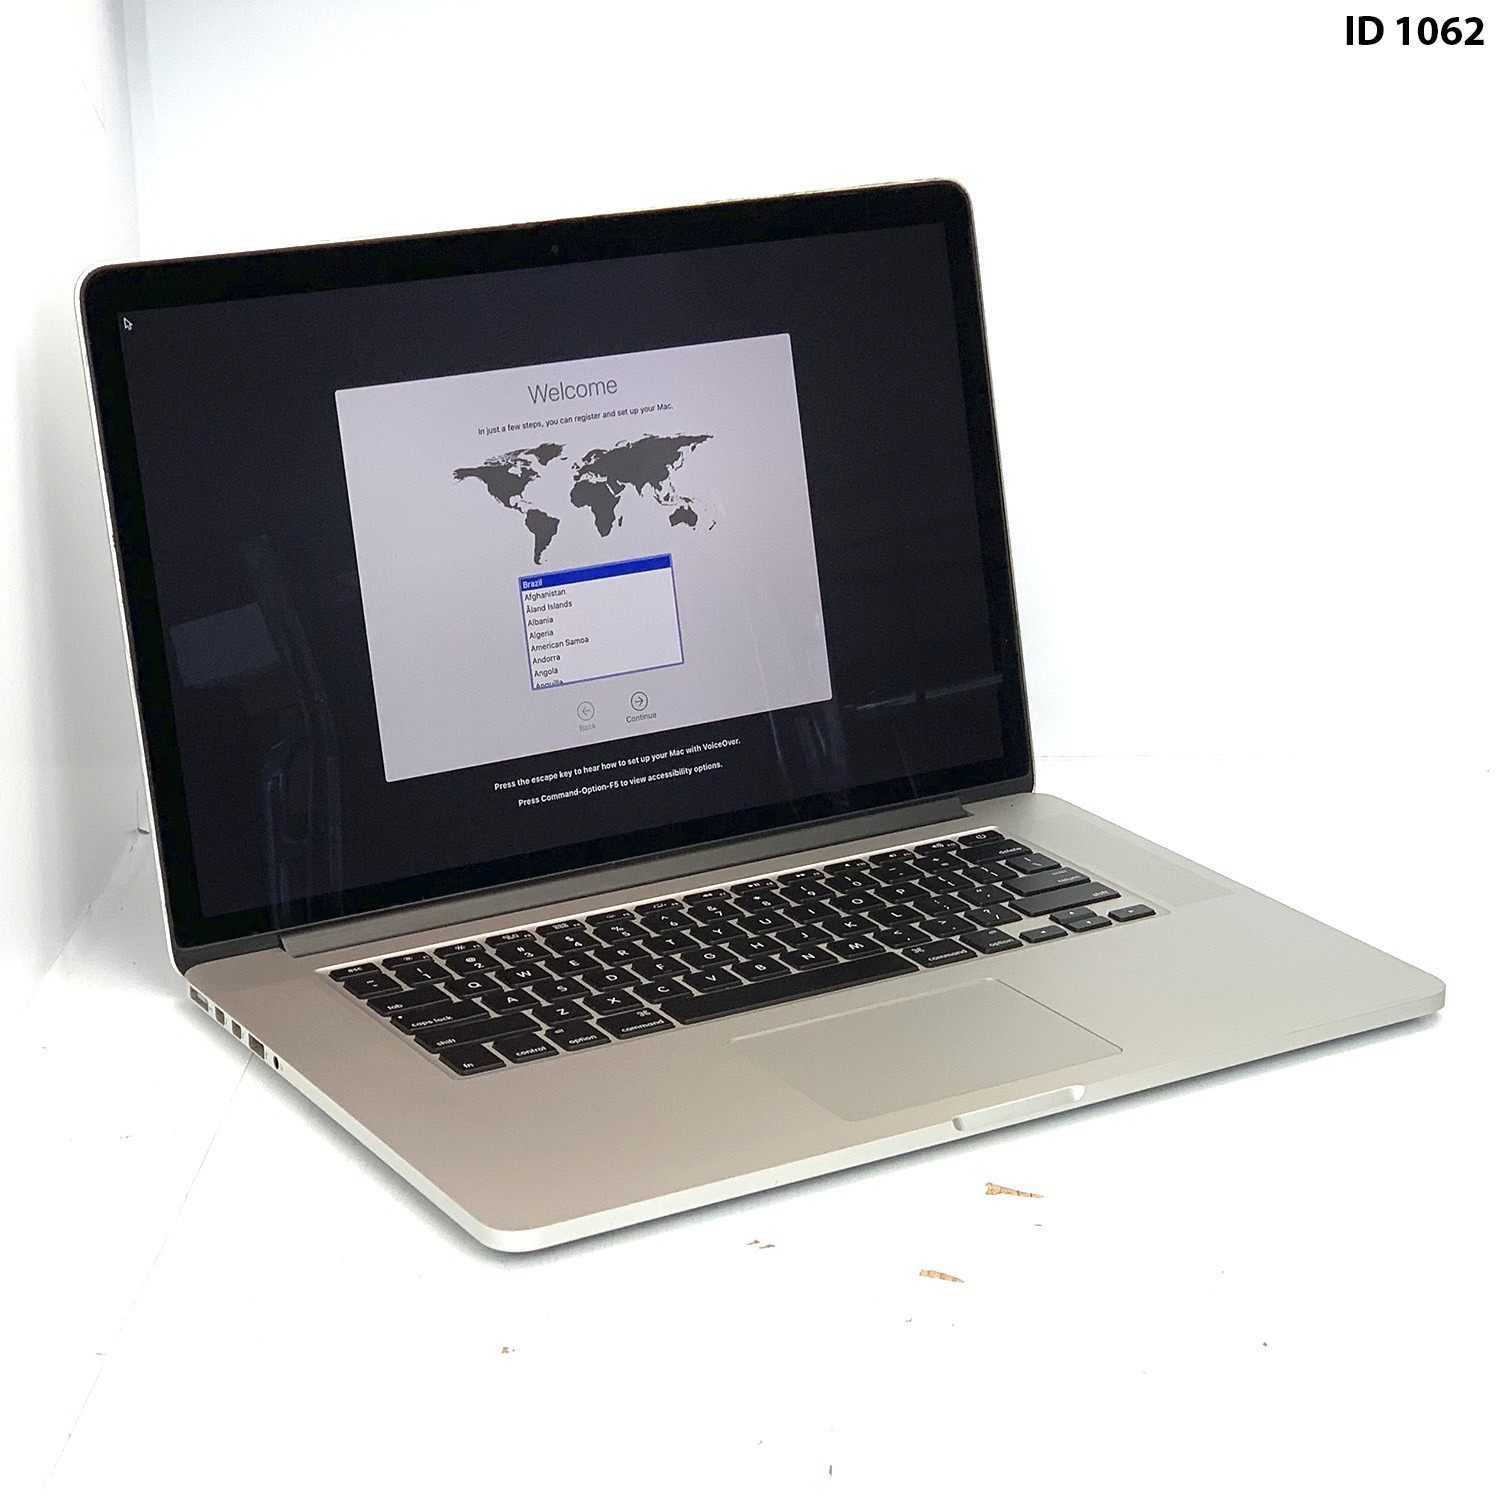 Macbook Pro Retina 15 i7 2.0Ghz 8GB 1TB SSD ME293LL/A Seminovo